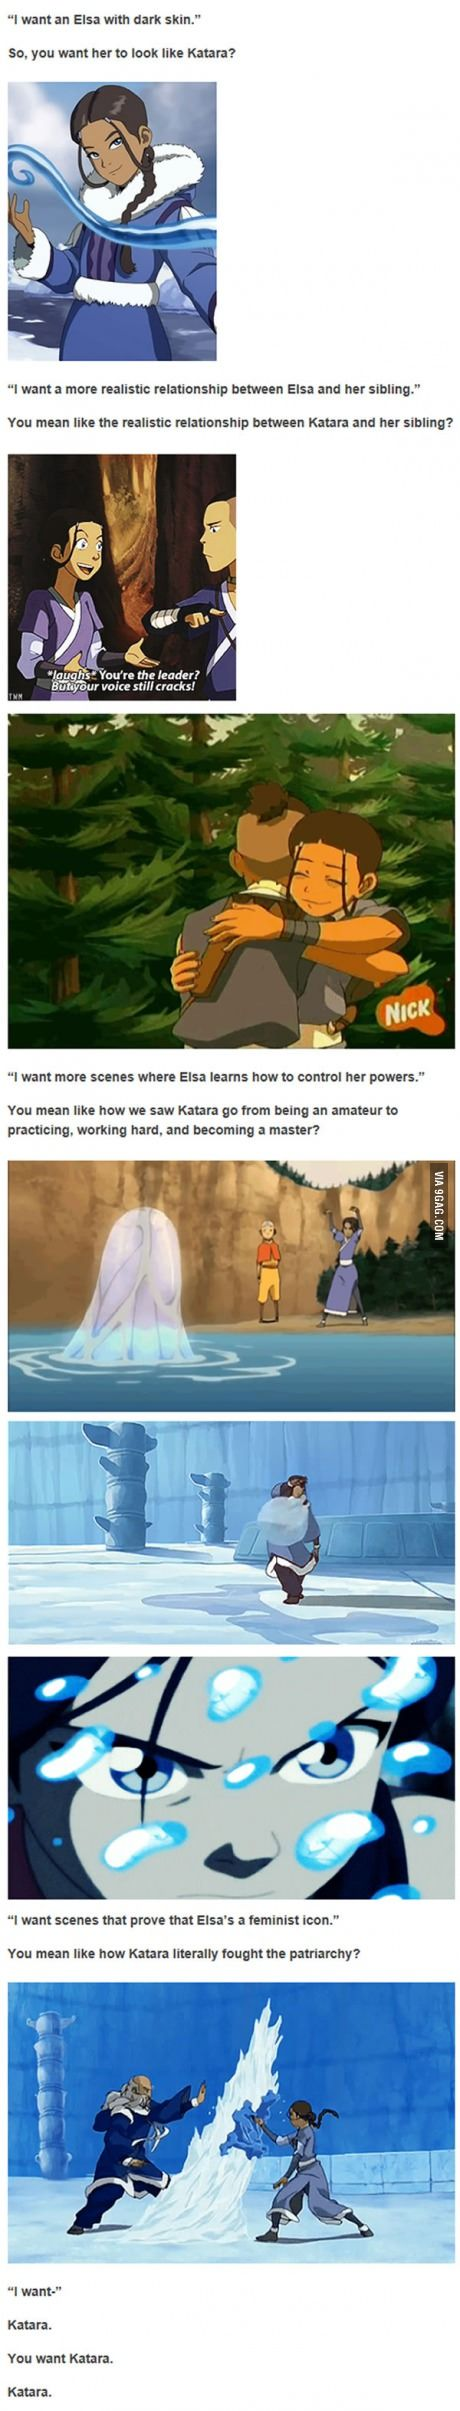 Katara is great, but Elsa is fine the way she is too. :)